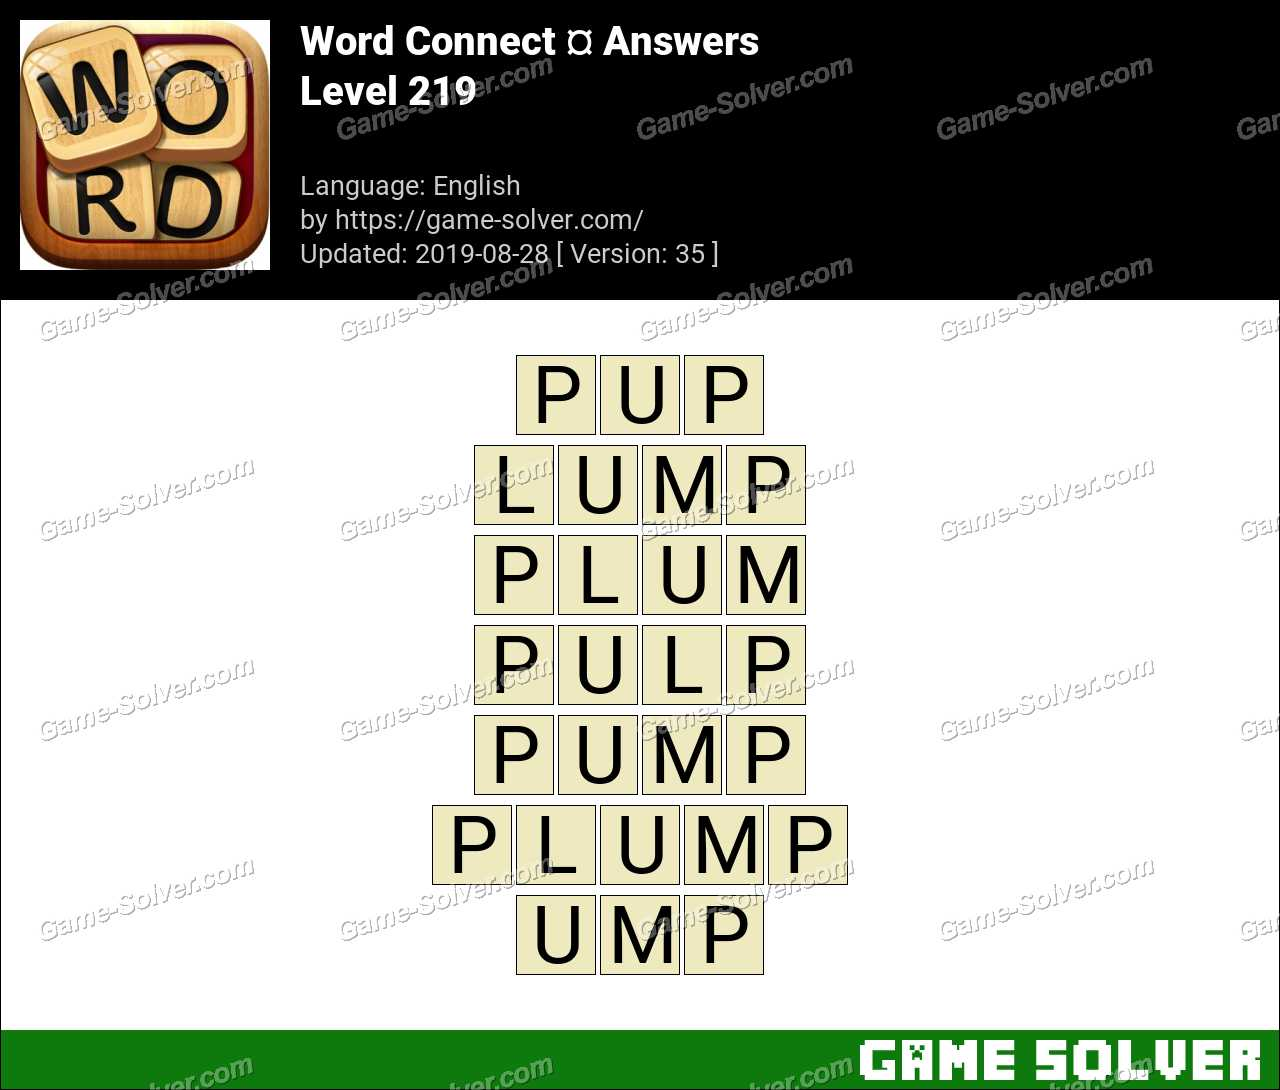 Word Connect Level 219 Answers